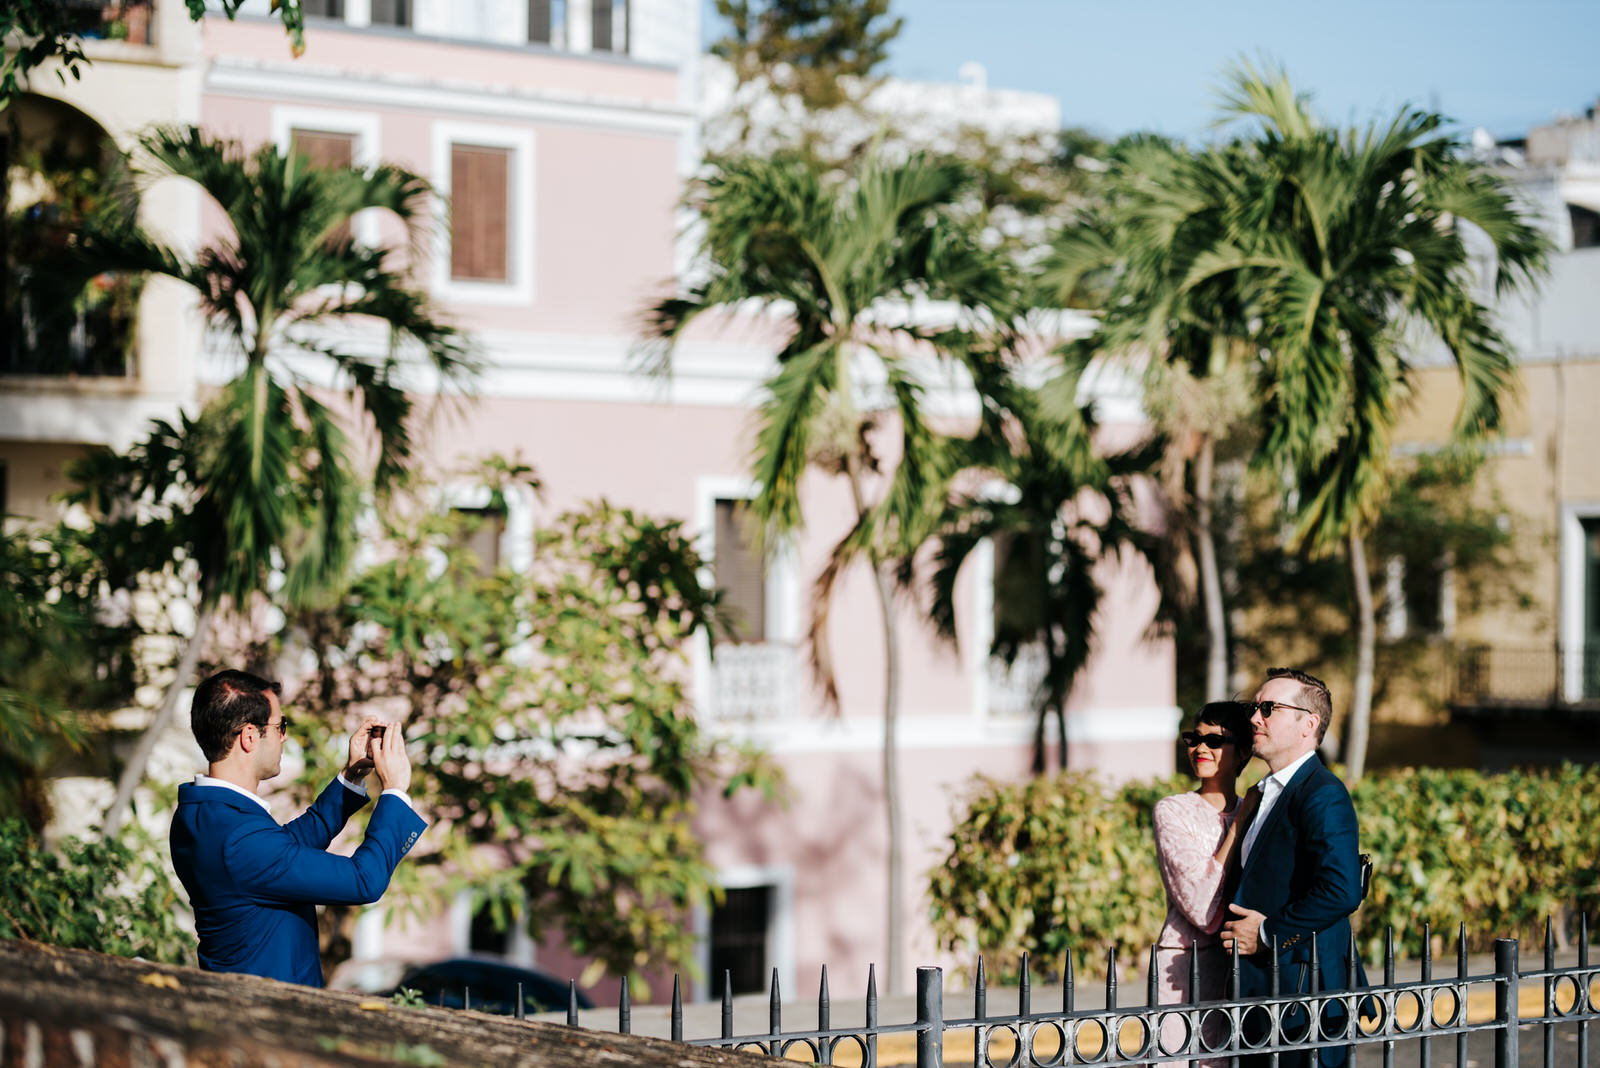 Guests take photos next to ceremony spot in Old San Juan while sun shines on the palm trees in the background